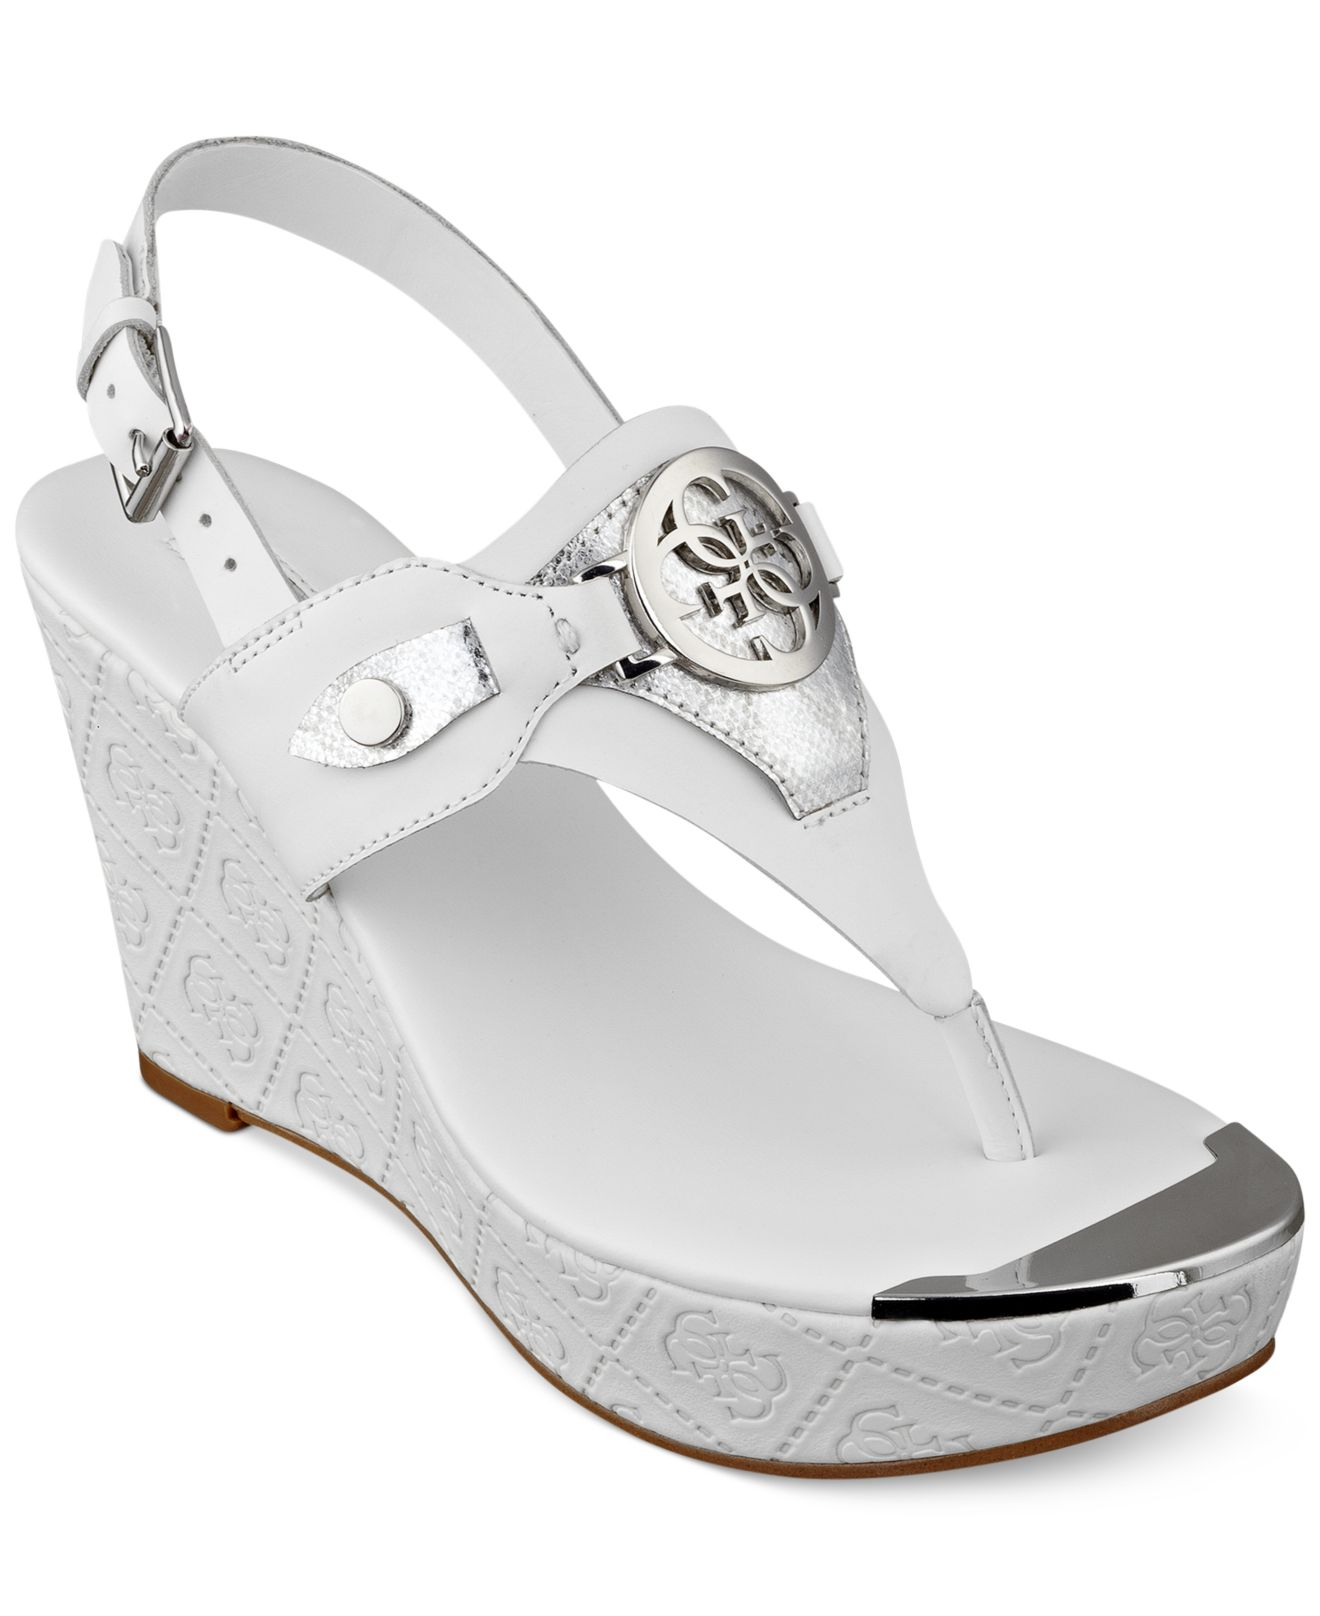 f16448e998 Guess Marcina Platform Wedge Thong Sandals in White - Lyst